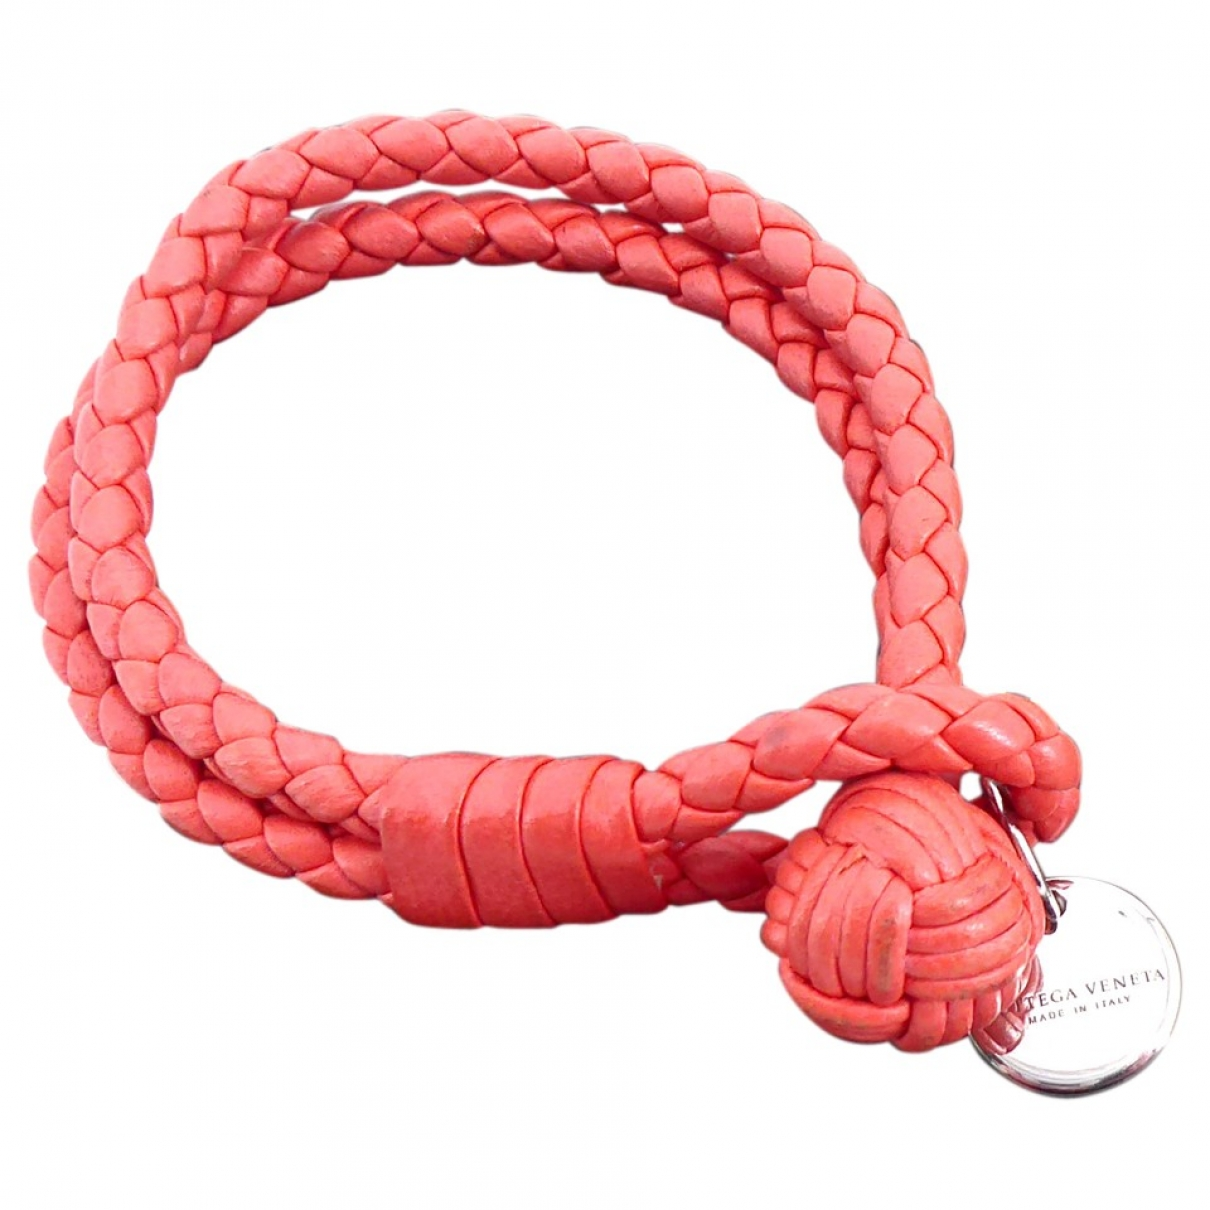 Bottega Veneta \N Armband in  Rot Lackleder